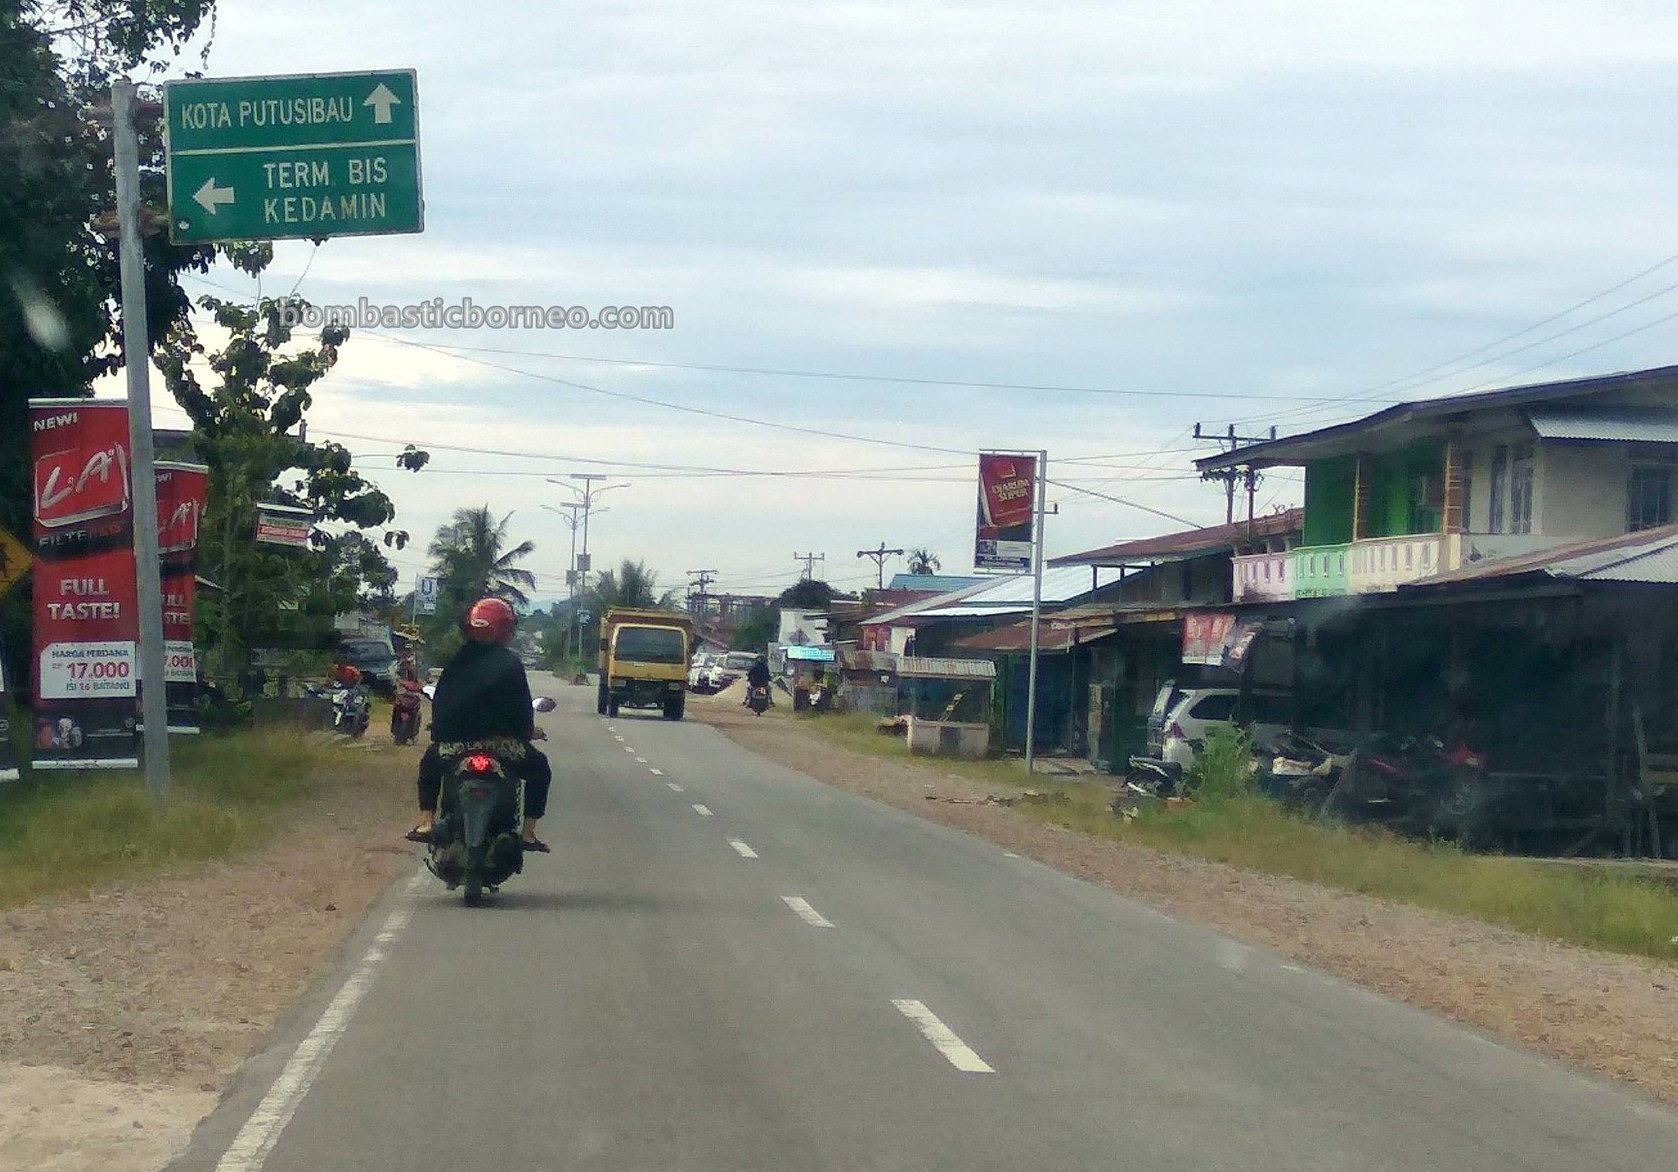 trans Kalimantan drive, backpackers, Borneo, Indonesia, Putussibau, Nanga Silat, Tourism, tourist attraction, Cross Border, 穿越婆罗洲游踪, 印尼西加里曼丹富都